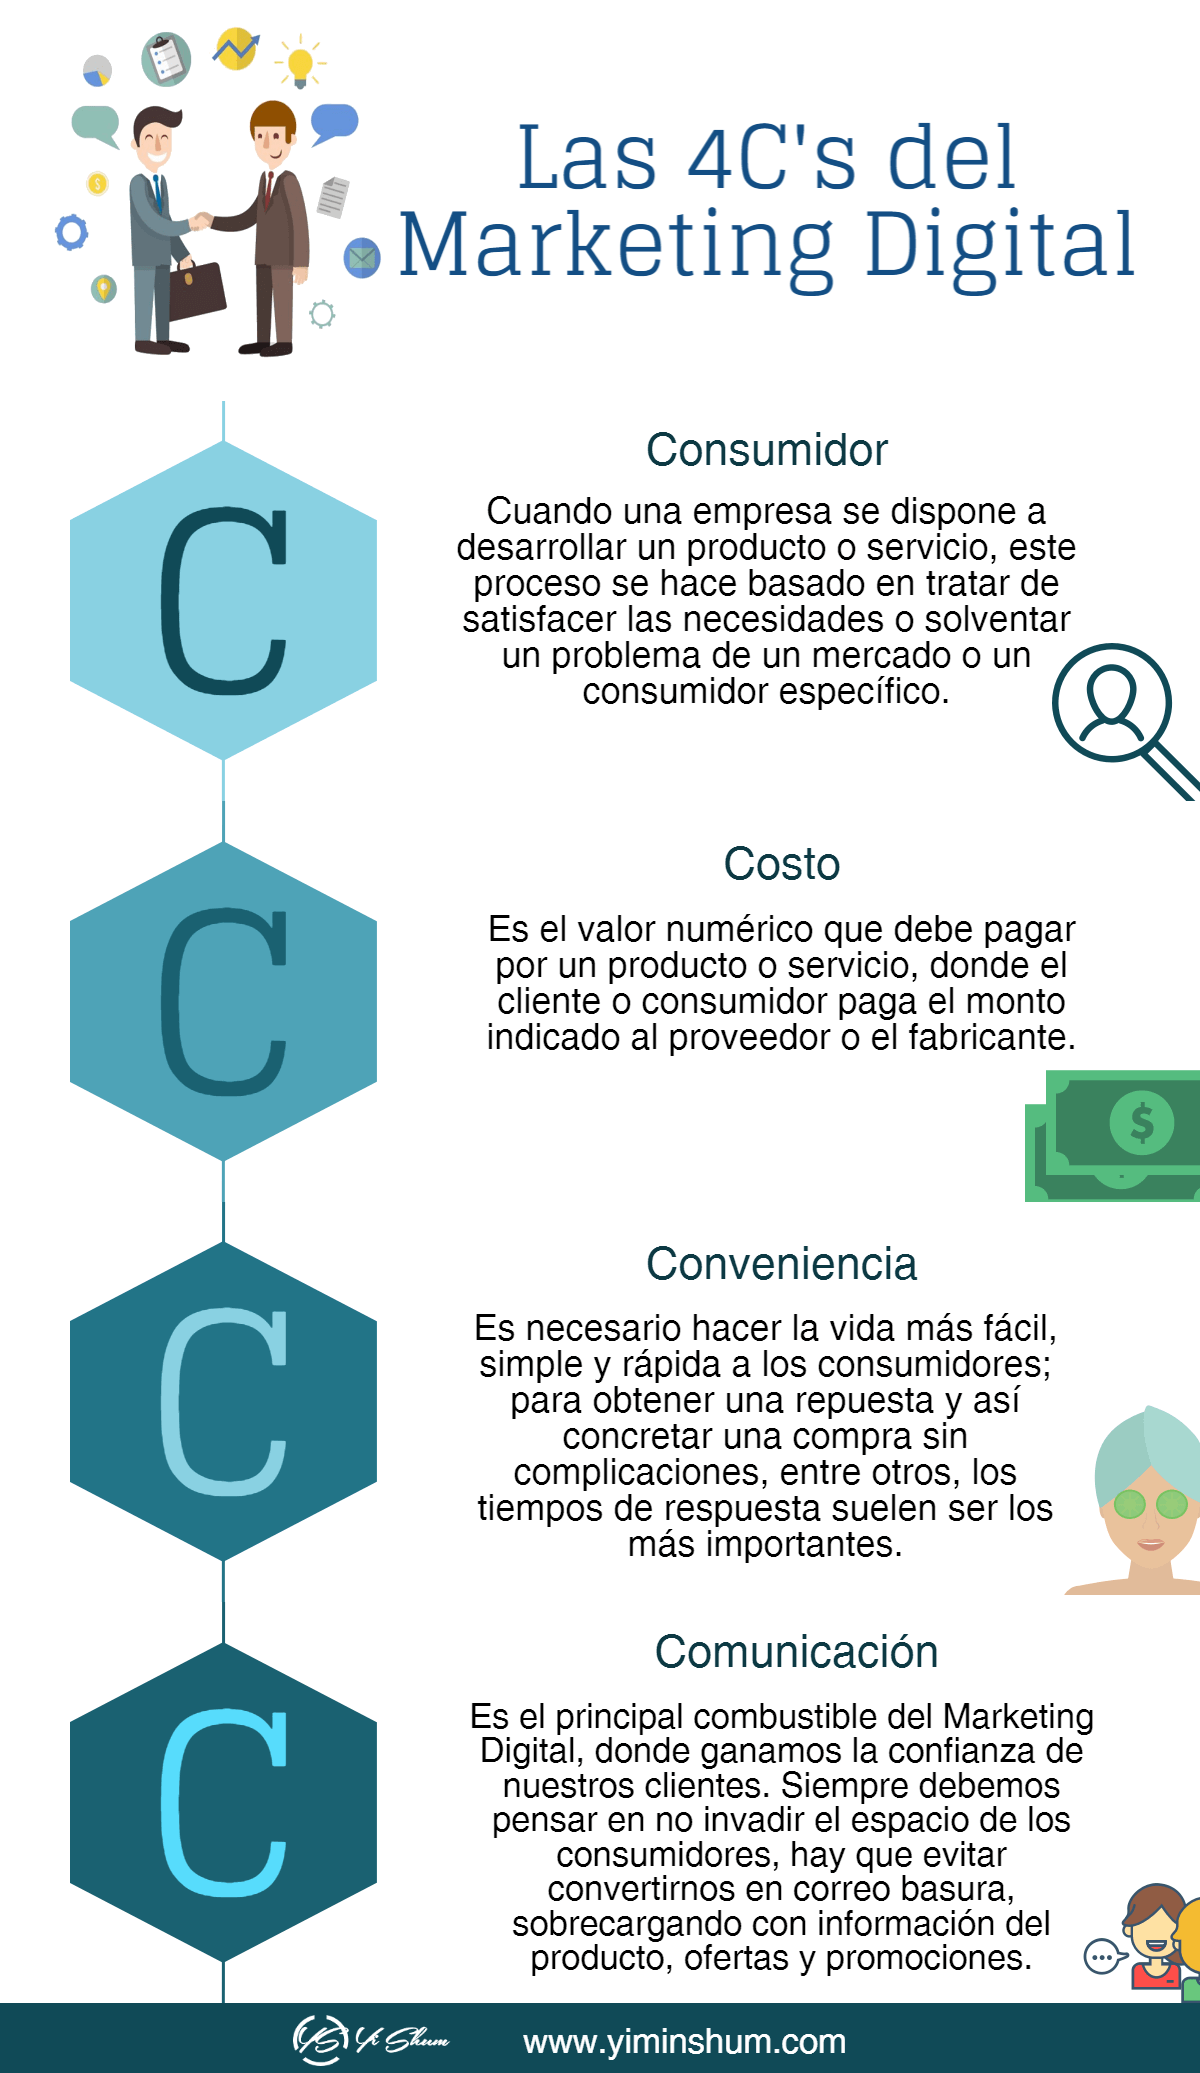 las 4c del marketing digital imagen